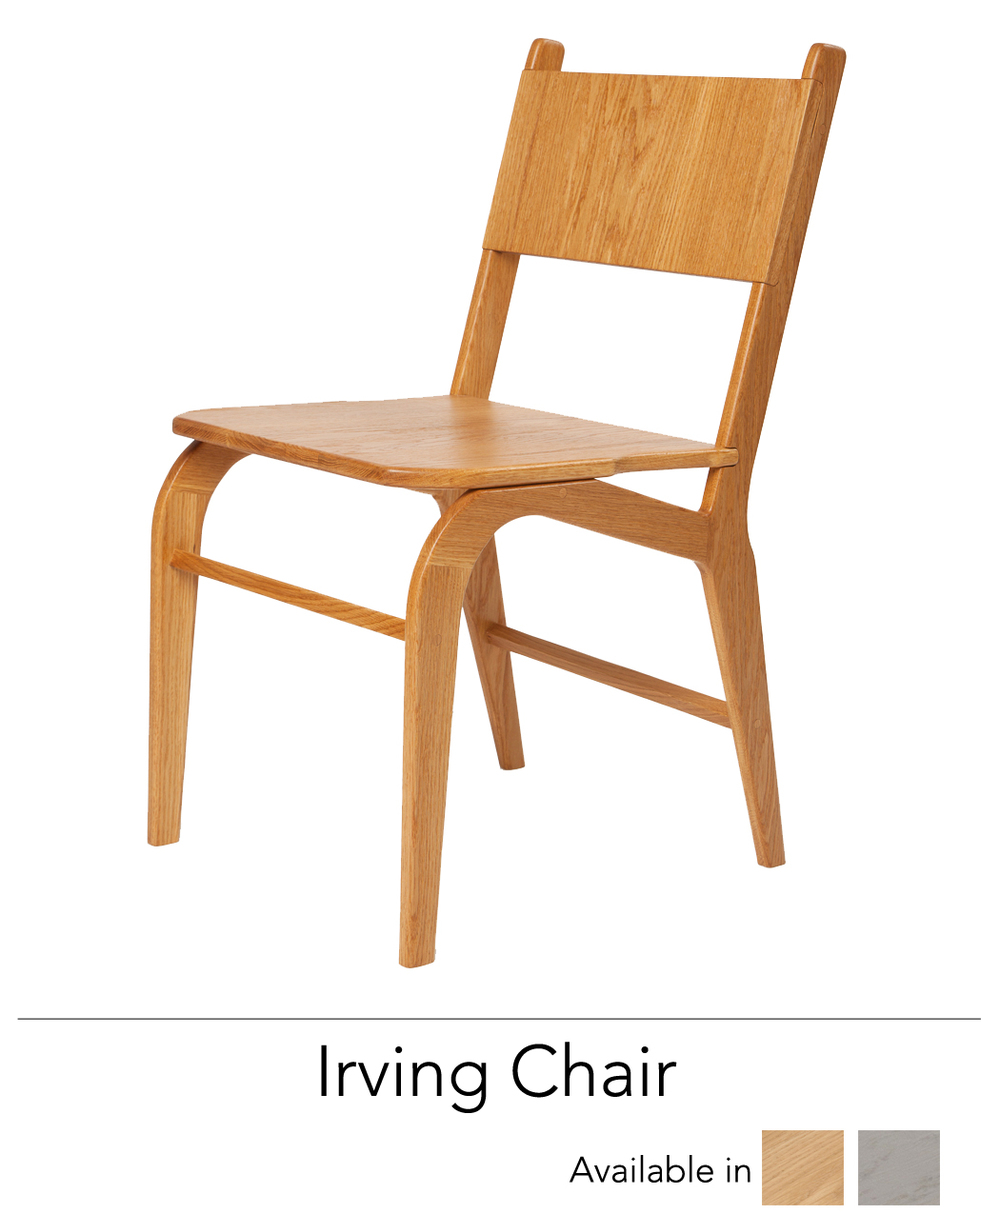 Irving Chair Front New.jpg